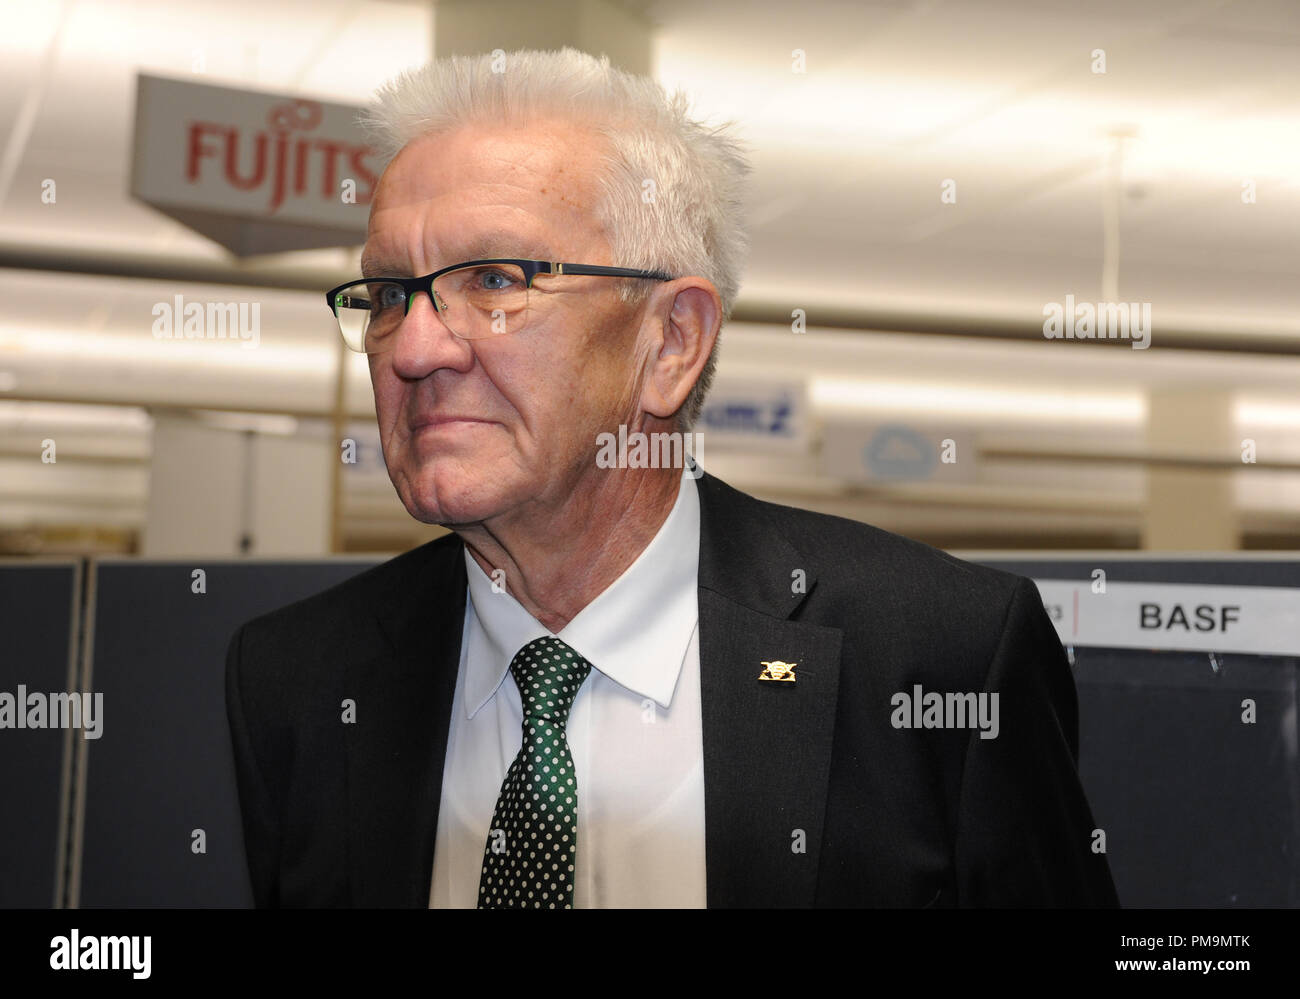 Silicon Valley, USA. 17th Sep, 2018. Baden-Württemberg's Prime Minister Winfried Kretschmann (Bündnis90/Die Grünen) visits the company 'Plug and Play' in Silicon Valley in California. Credit: Nico Pointer/dpa/Alamy Live News - Stock Image